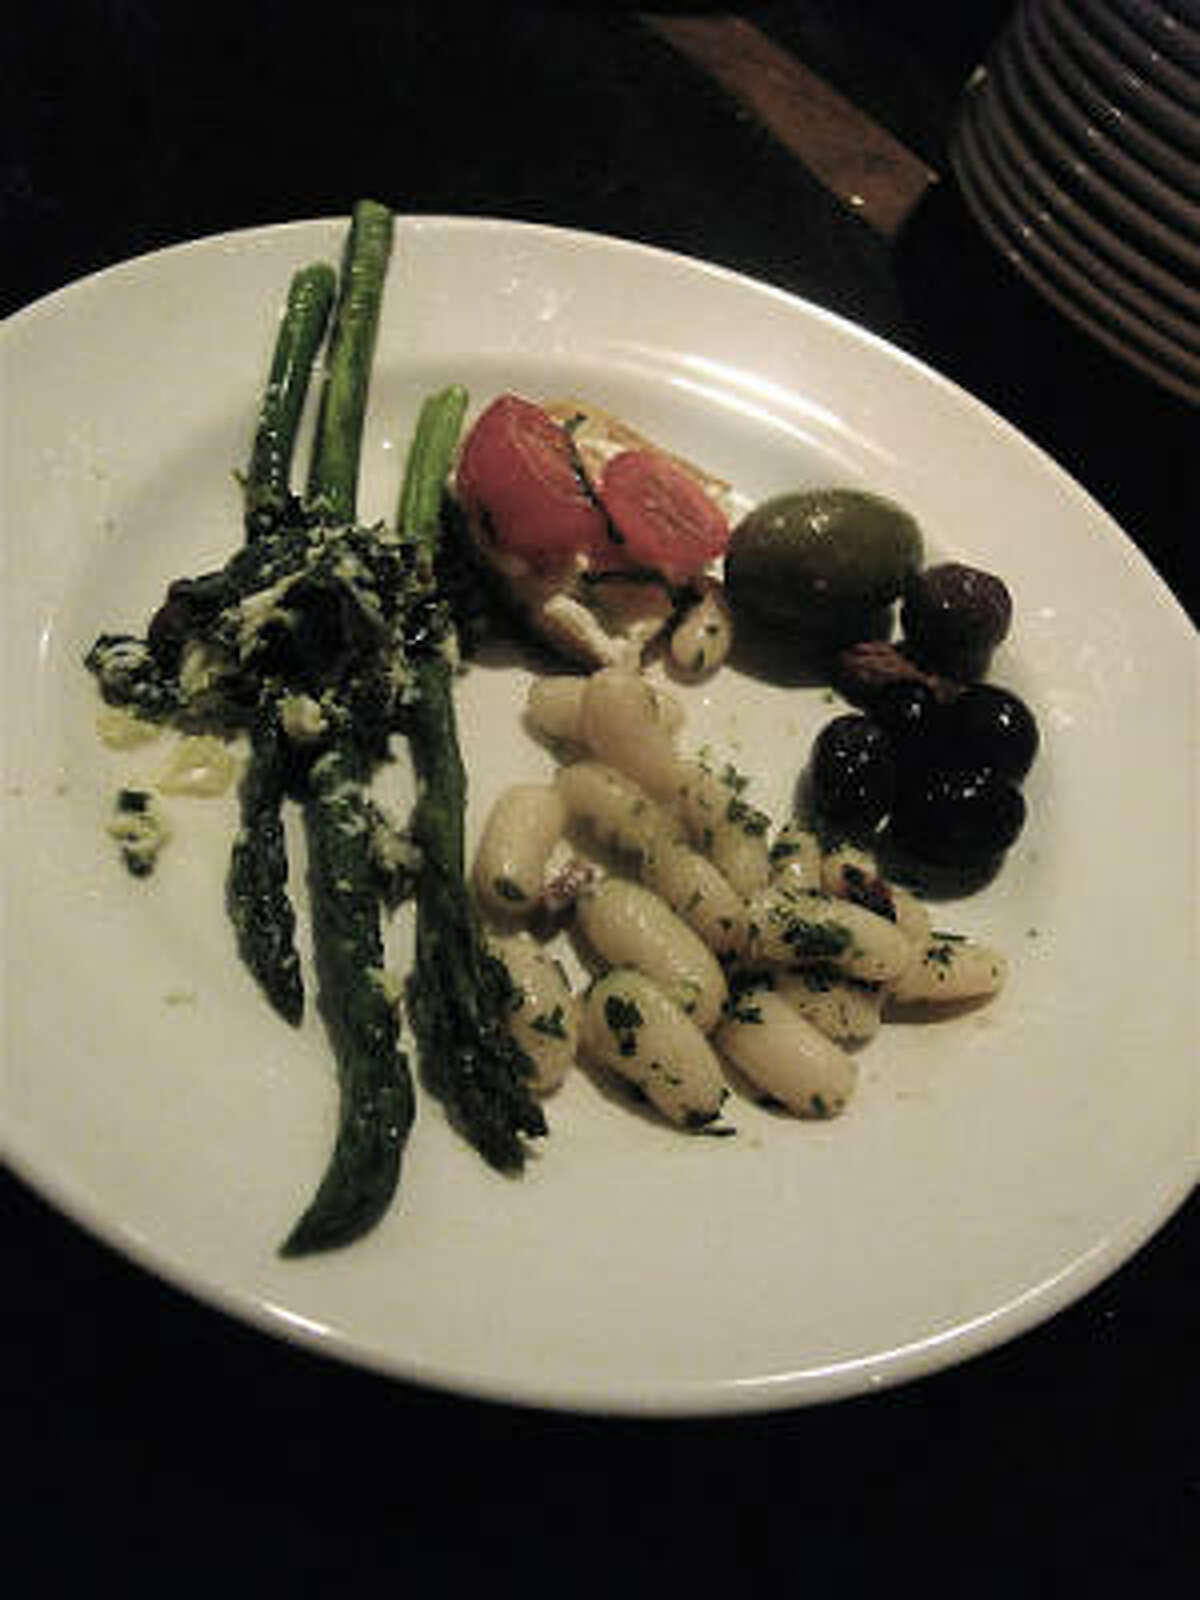 Antipasti at Tre Trattr=oria In San Antonio: asparagus with salsa rustica; bruschetta with house-made ricotta an cherry tomatoes; olives with fennel seed & orange; cannellini wih gremolata.